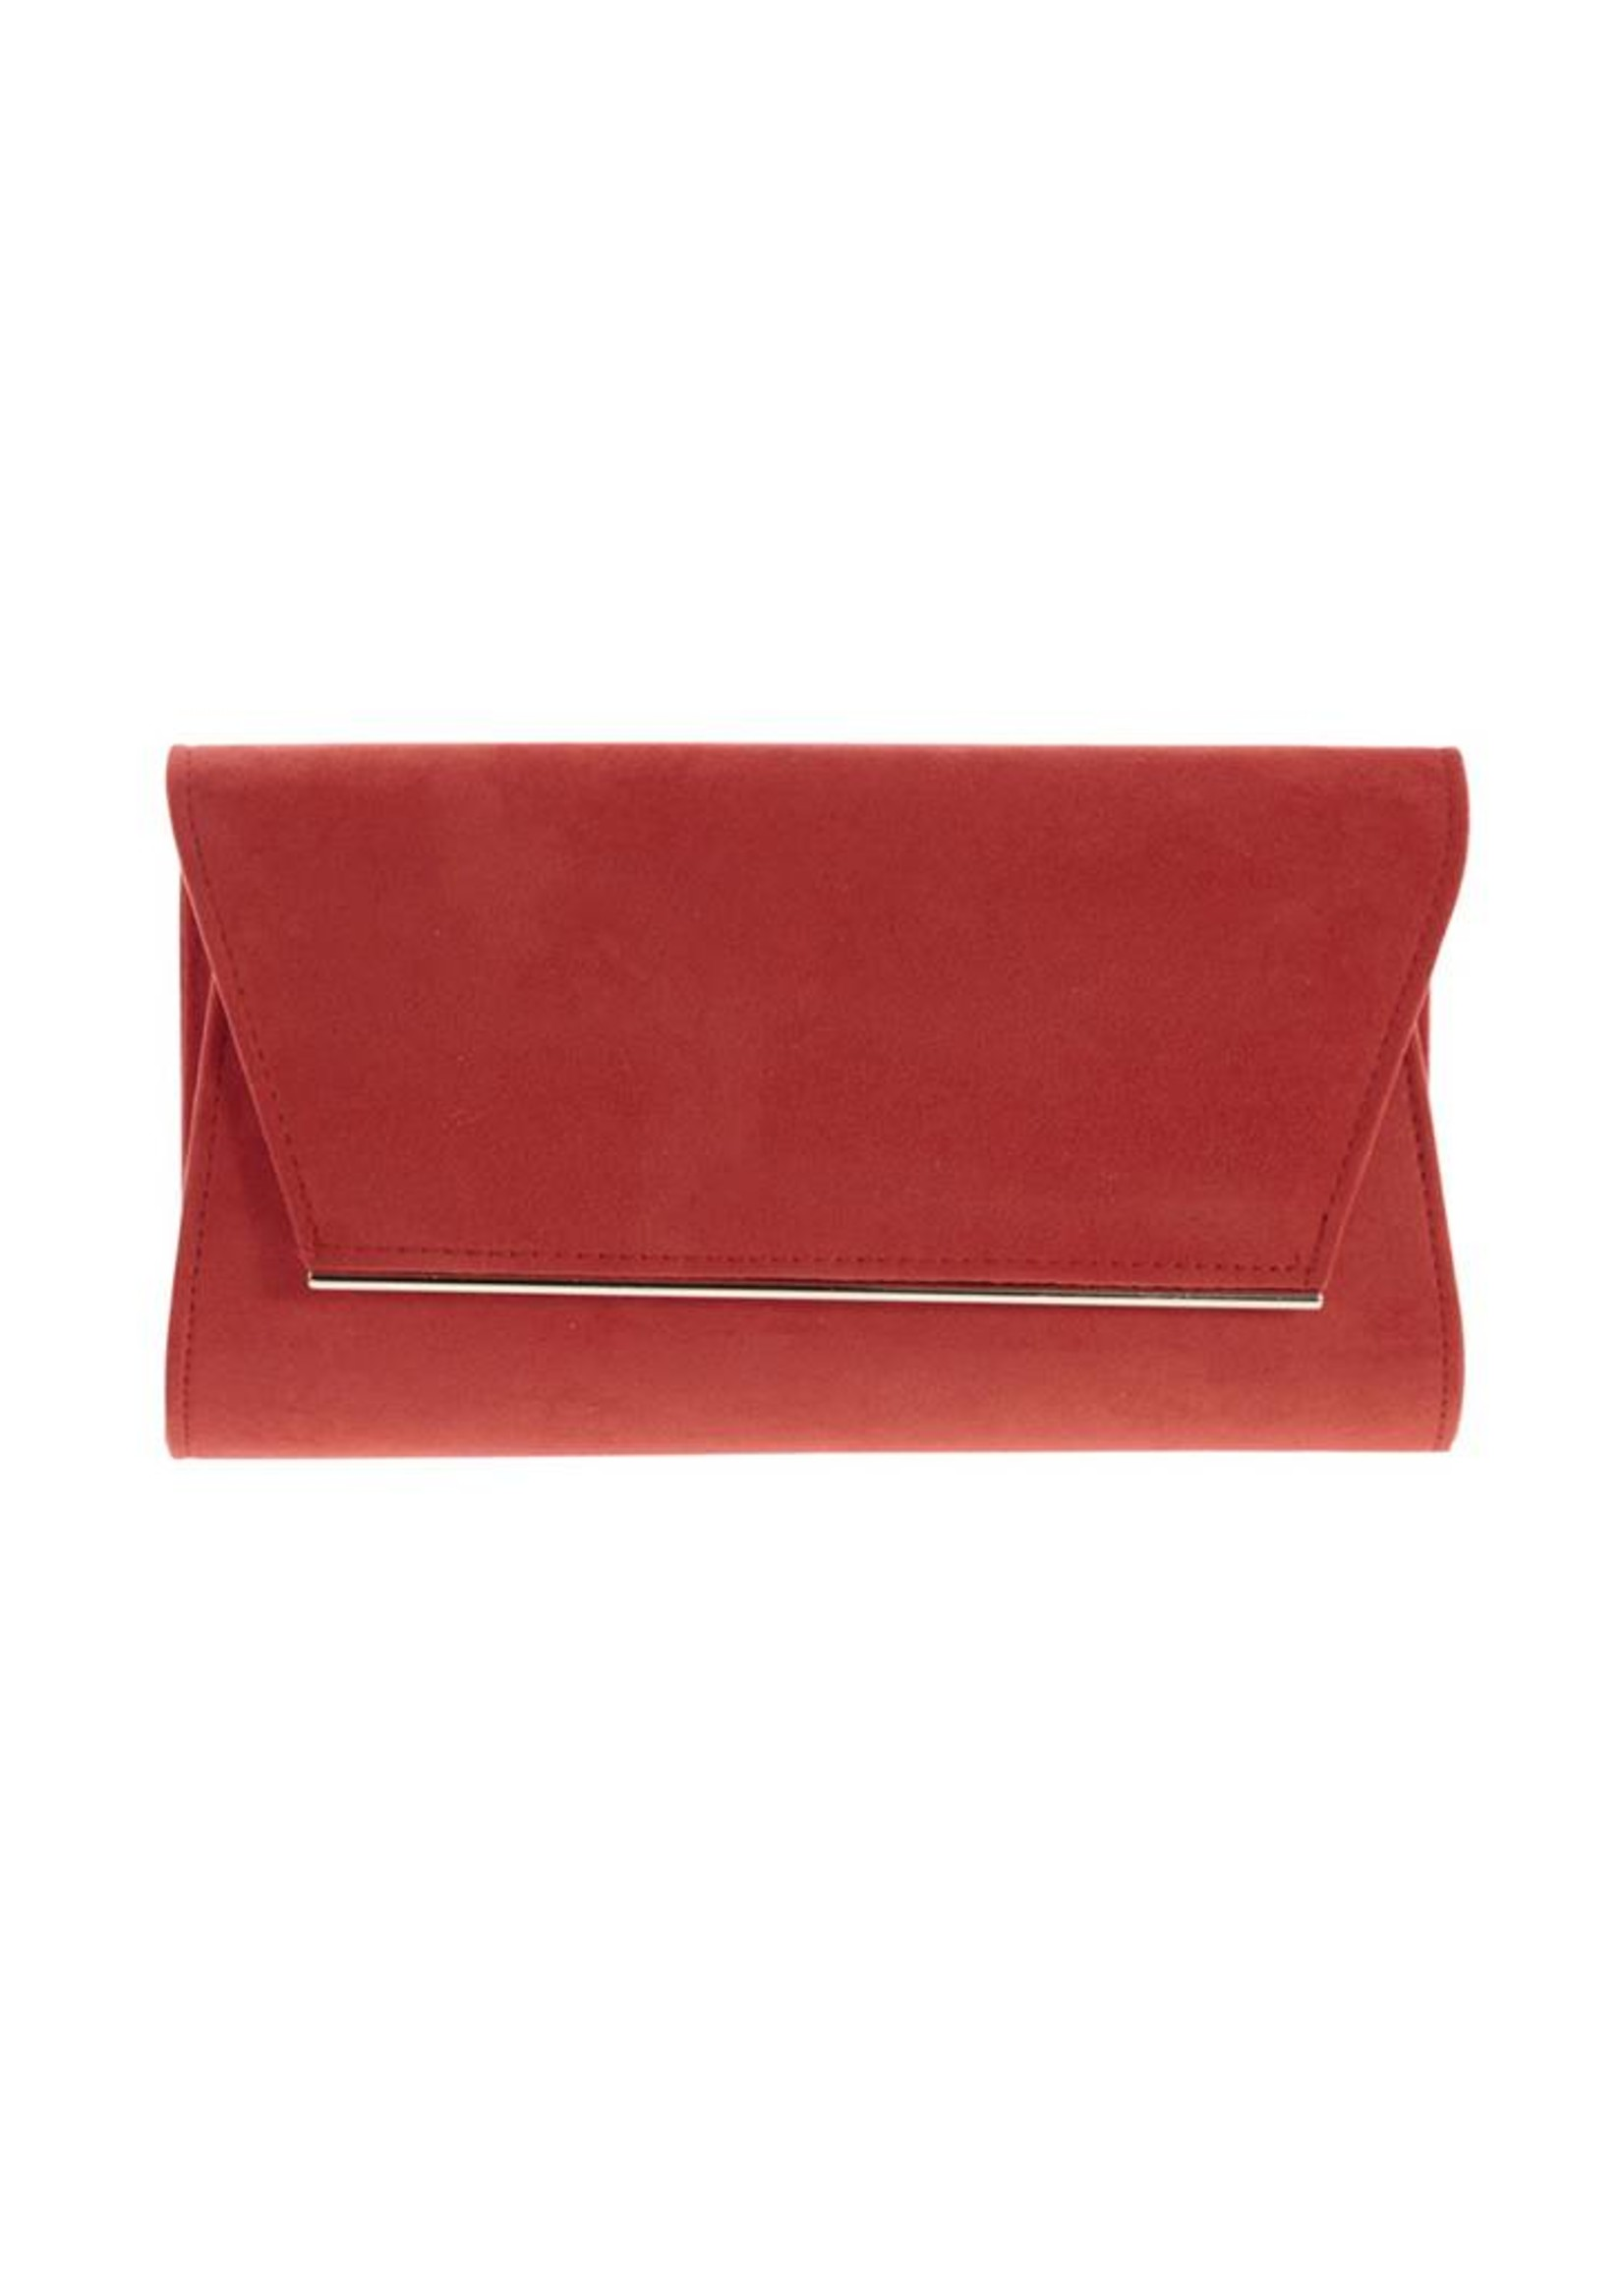 Gabee Products Nicole Clutch - Orange